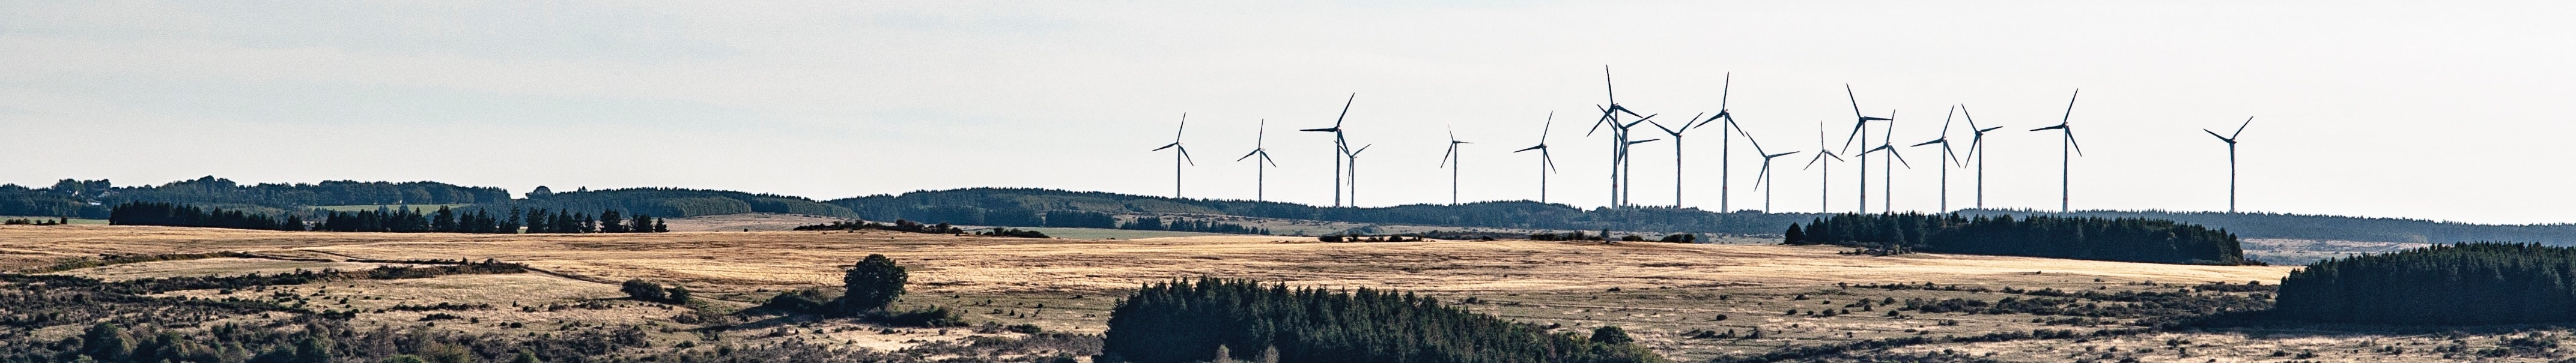 RFF-CMCC-EIEE webinar:  Green finance for a climate-resilient post-COVID-19 recovery